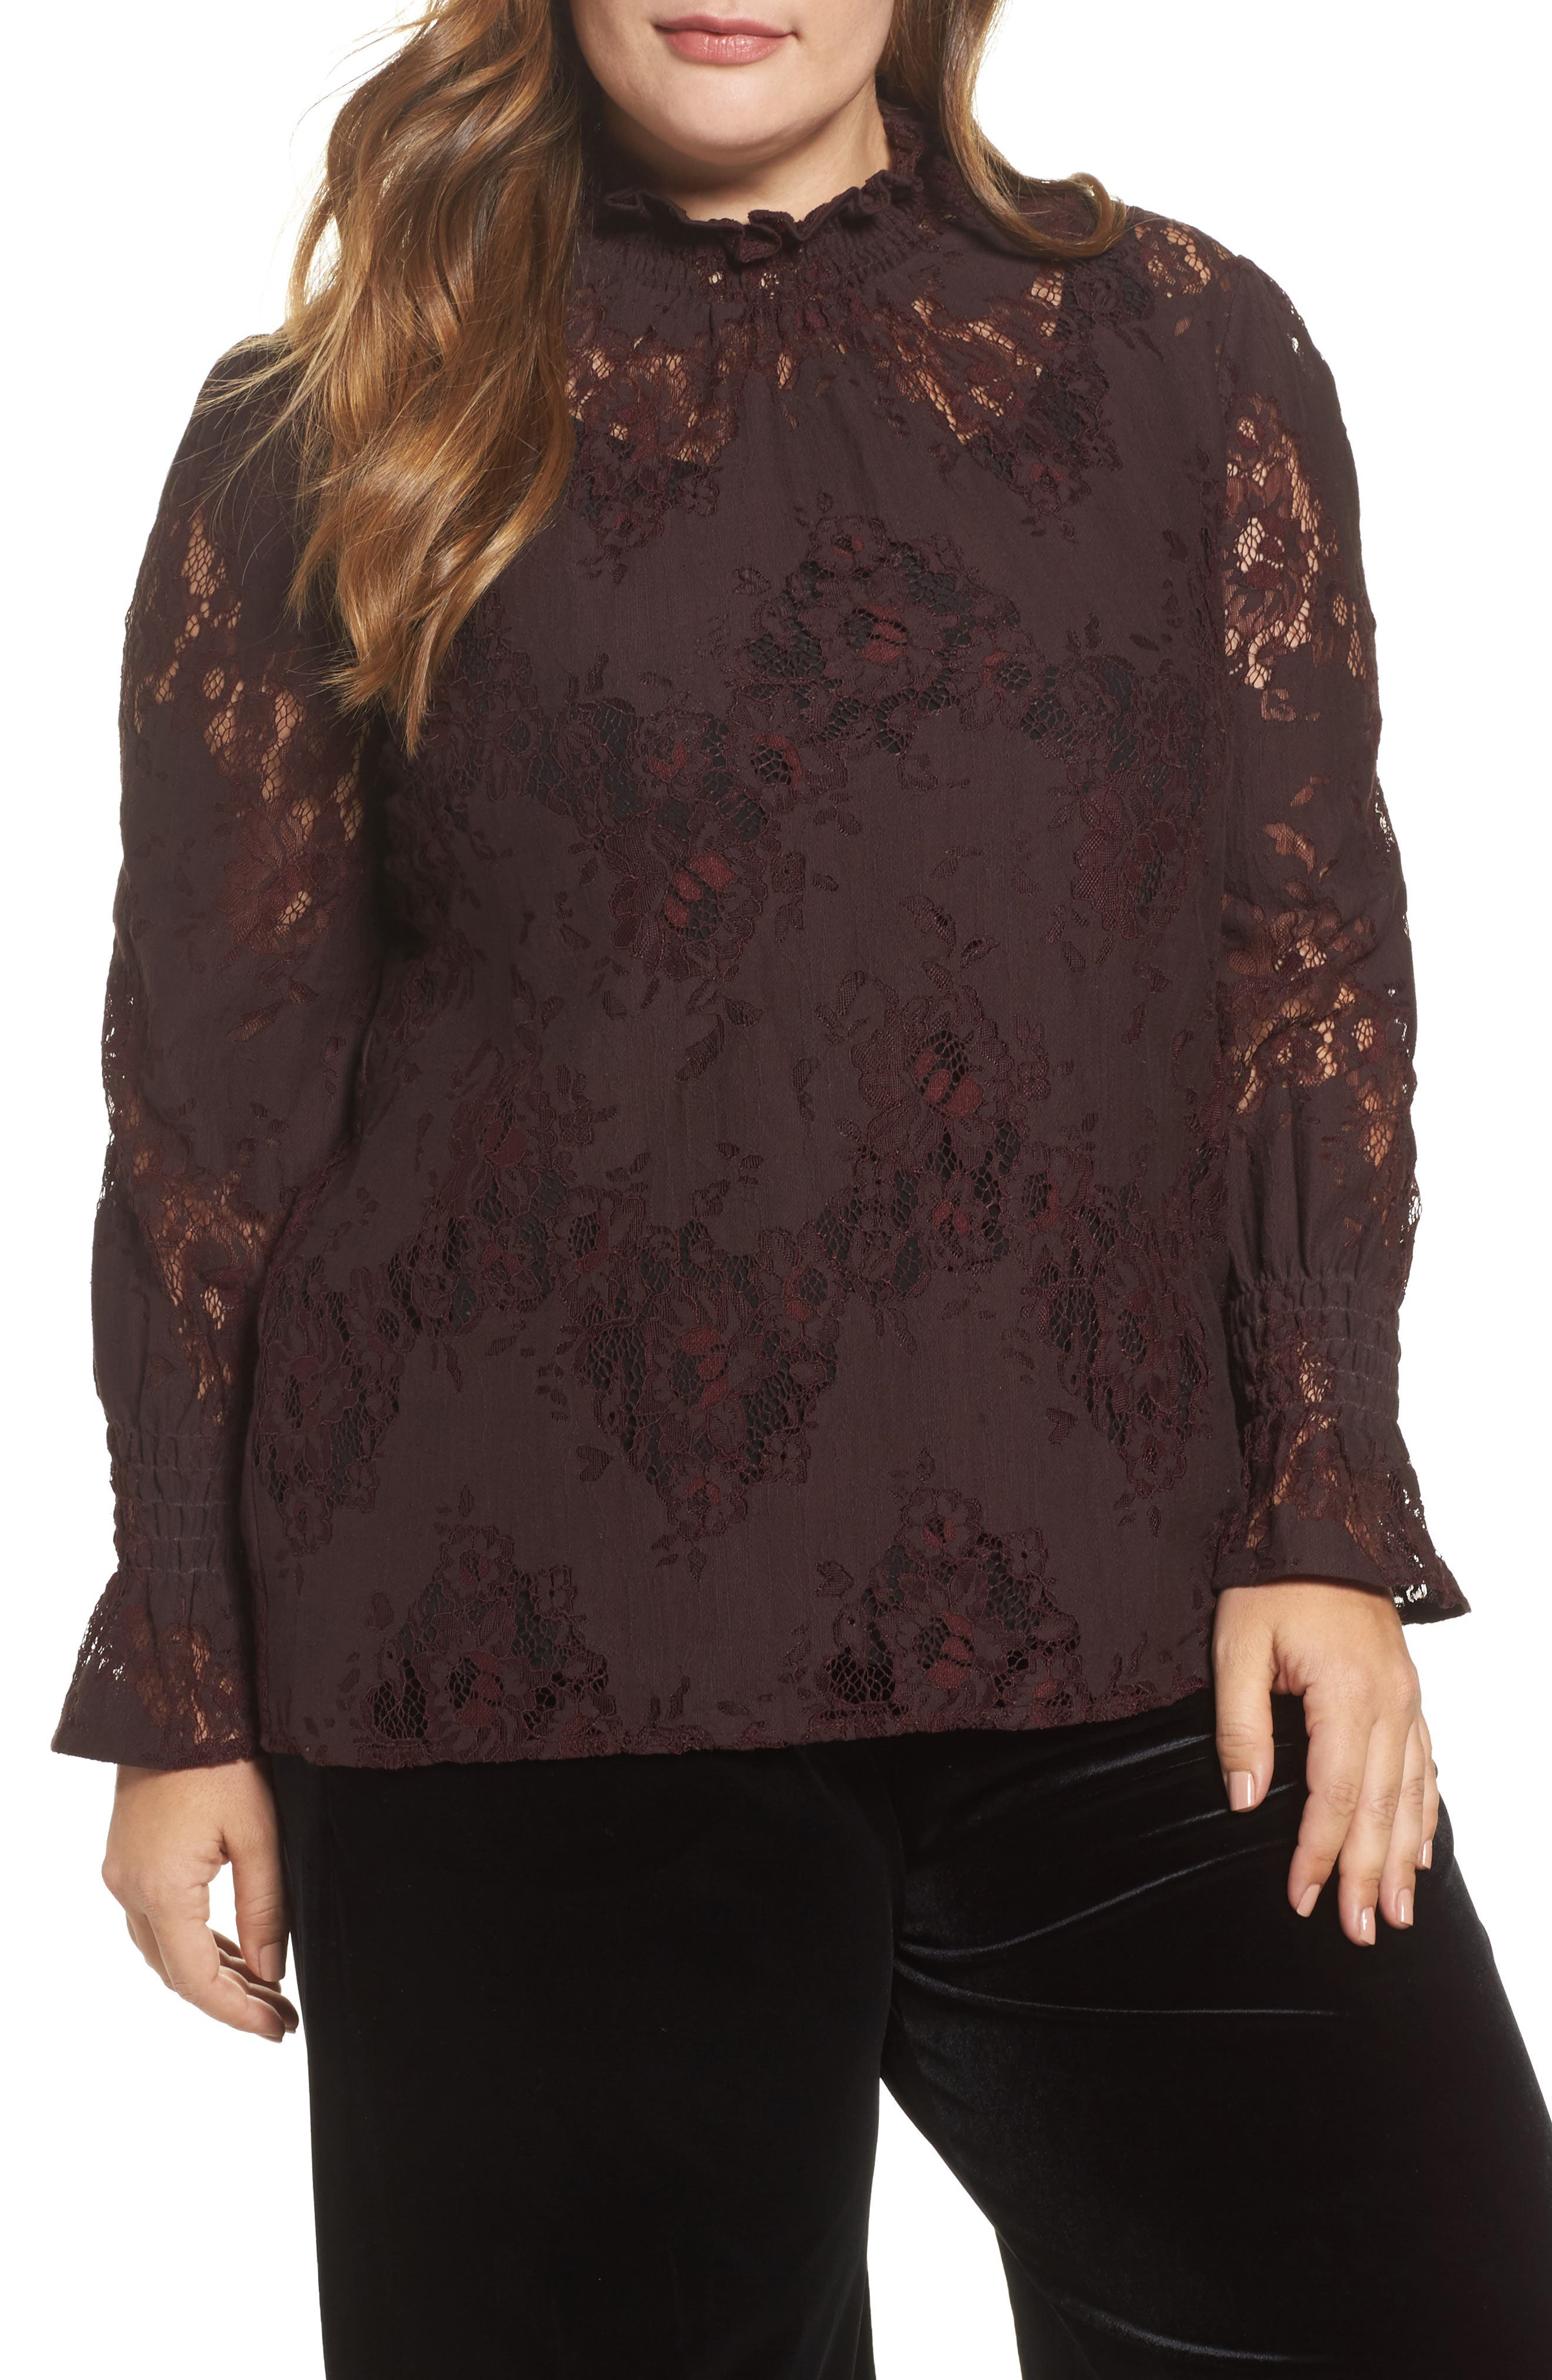 High Neck Ruffle & Lace Blouse,                             Main thumbnail 1, color,                             600